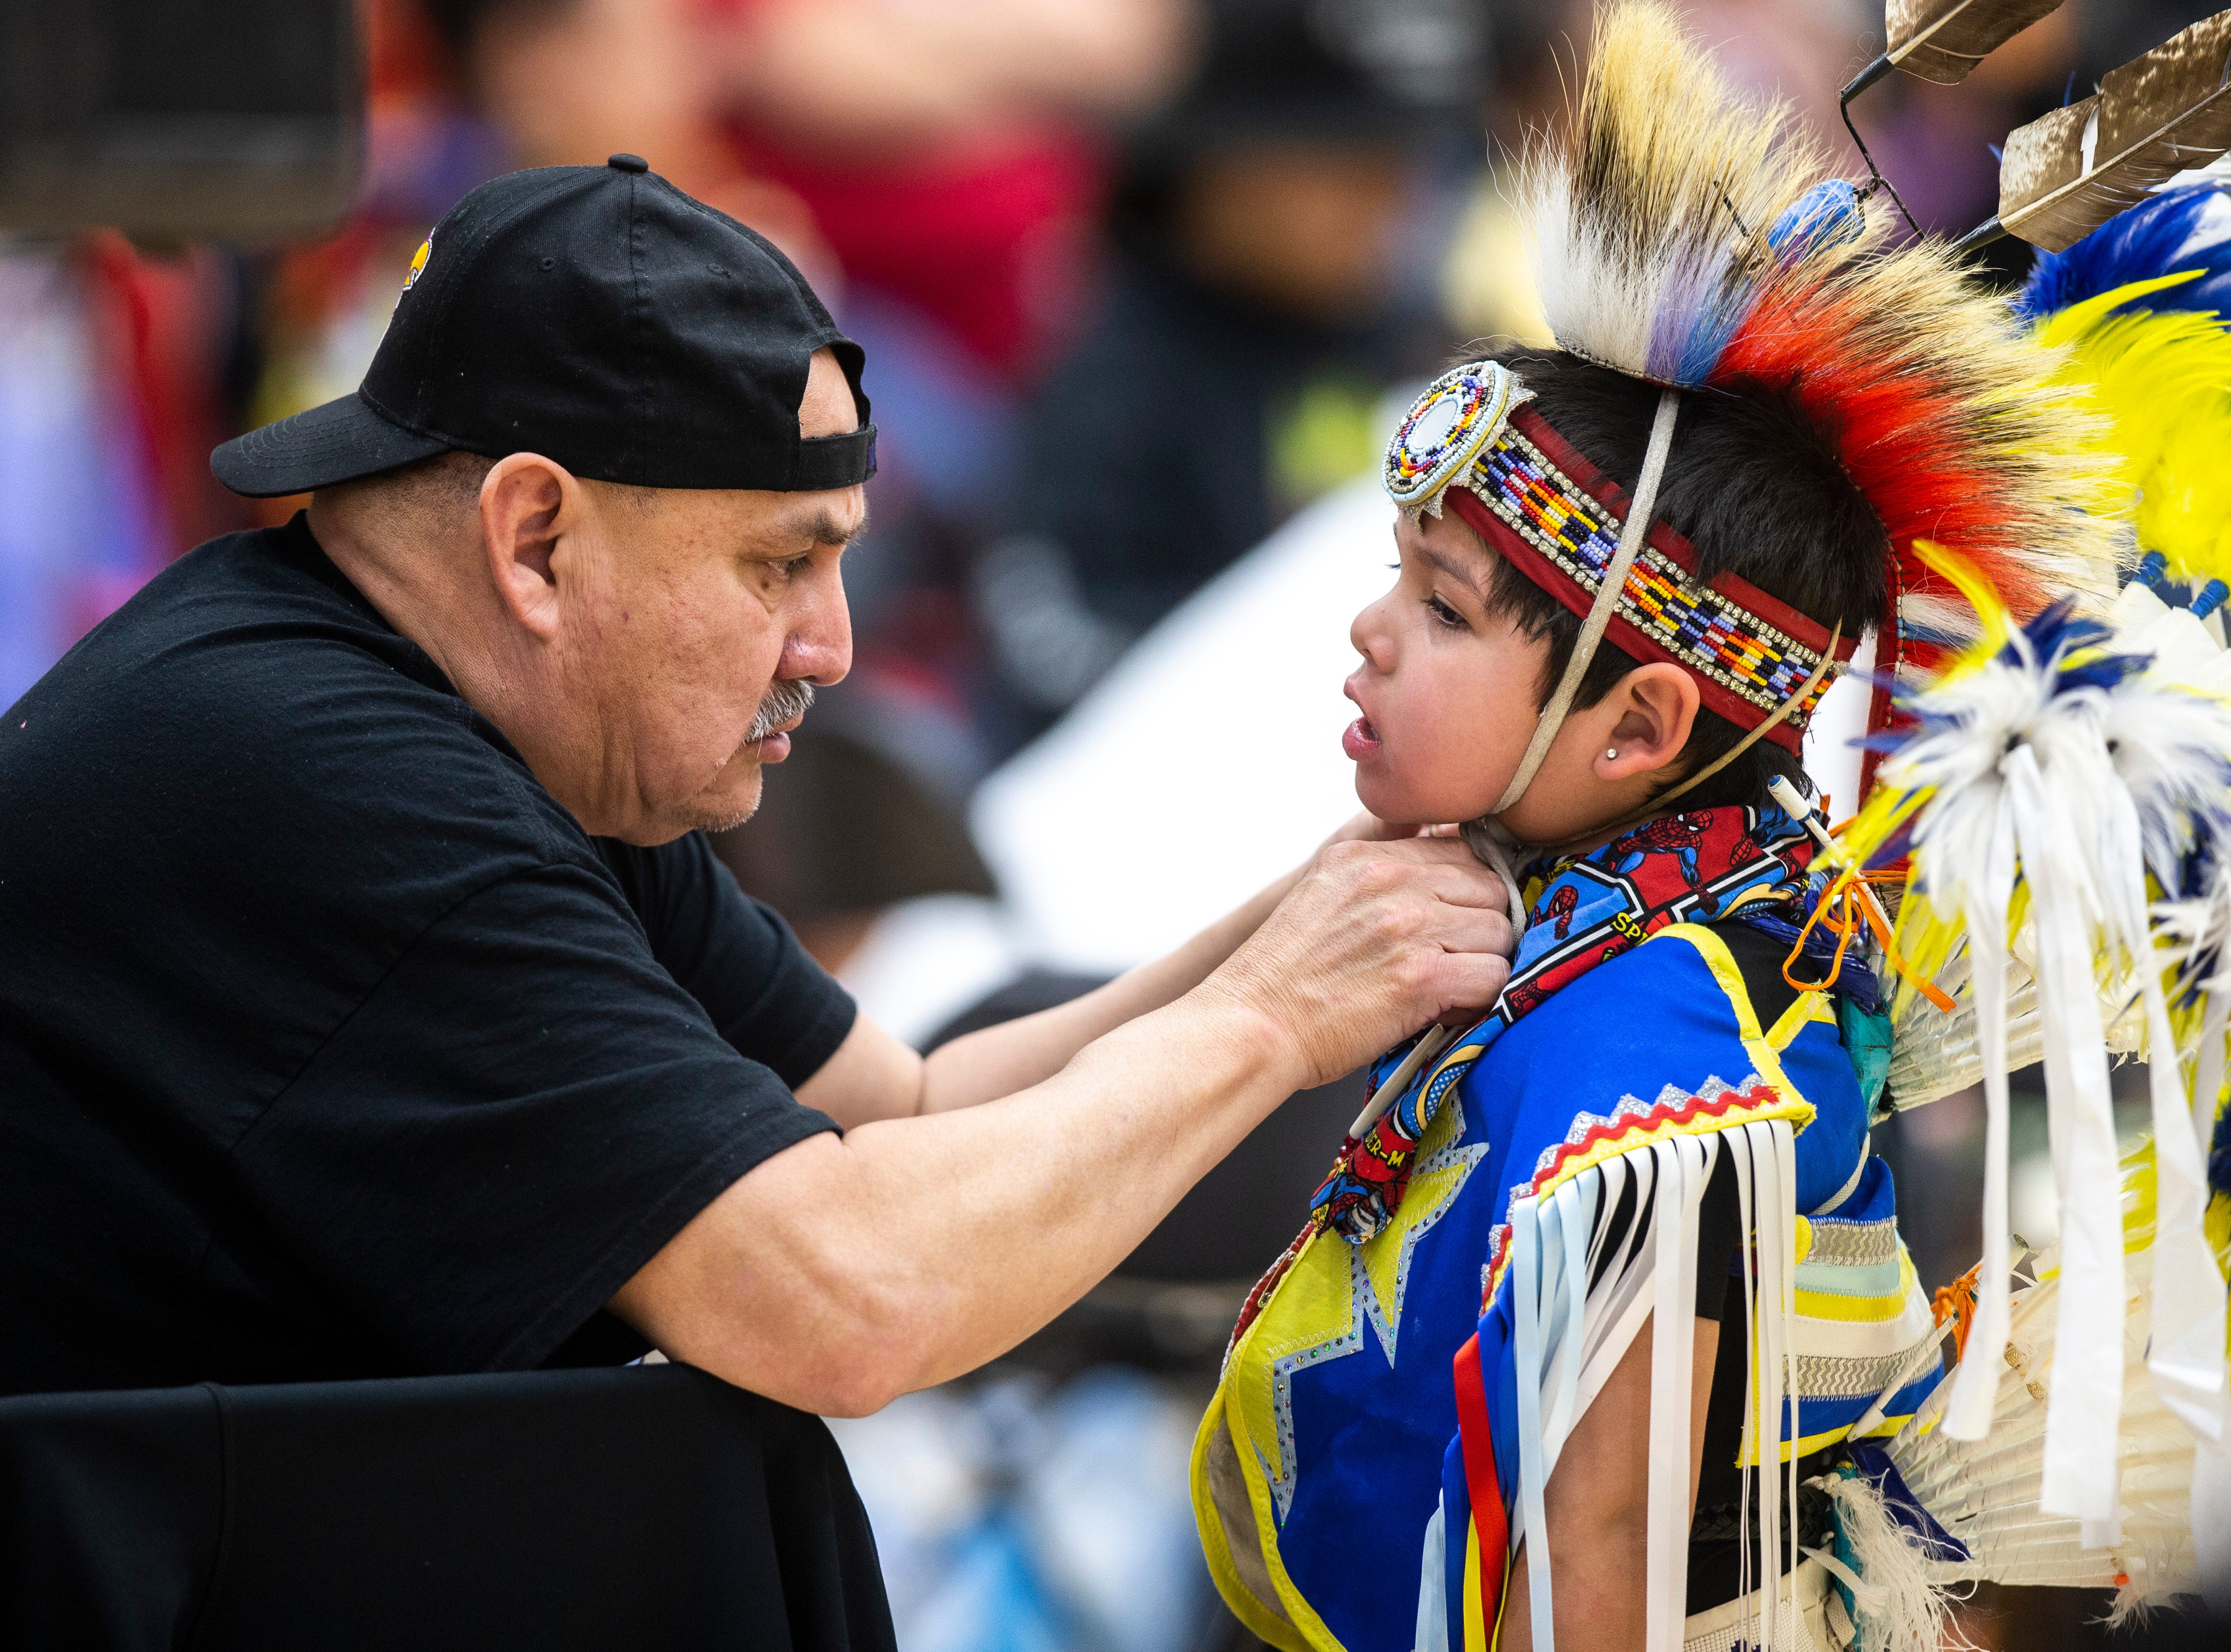 Marshal Demarce, of the Meskwaki Indian settlement in Tama, Iowa, helps his grandson Leriss Keanna, 4, before dancing during the 25th annual University of Iowa powwow, Saturday, April 20, 2019, at the Field House on the University of Iowa campus in Iowa City, Iowa. Drums from White Tail, Nebraska, Eagle Feather, Iowa and the Meskwaki Nation, Iowa participated in the event.